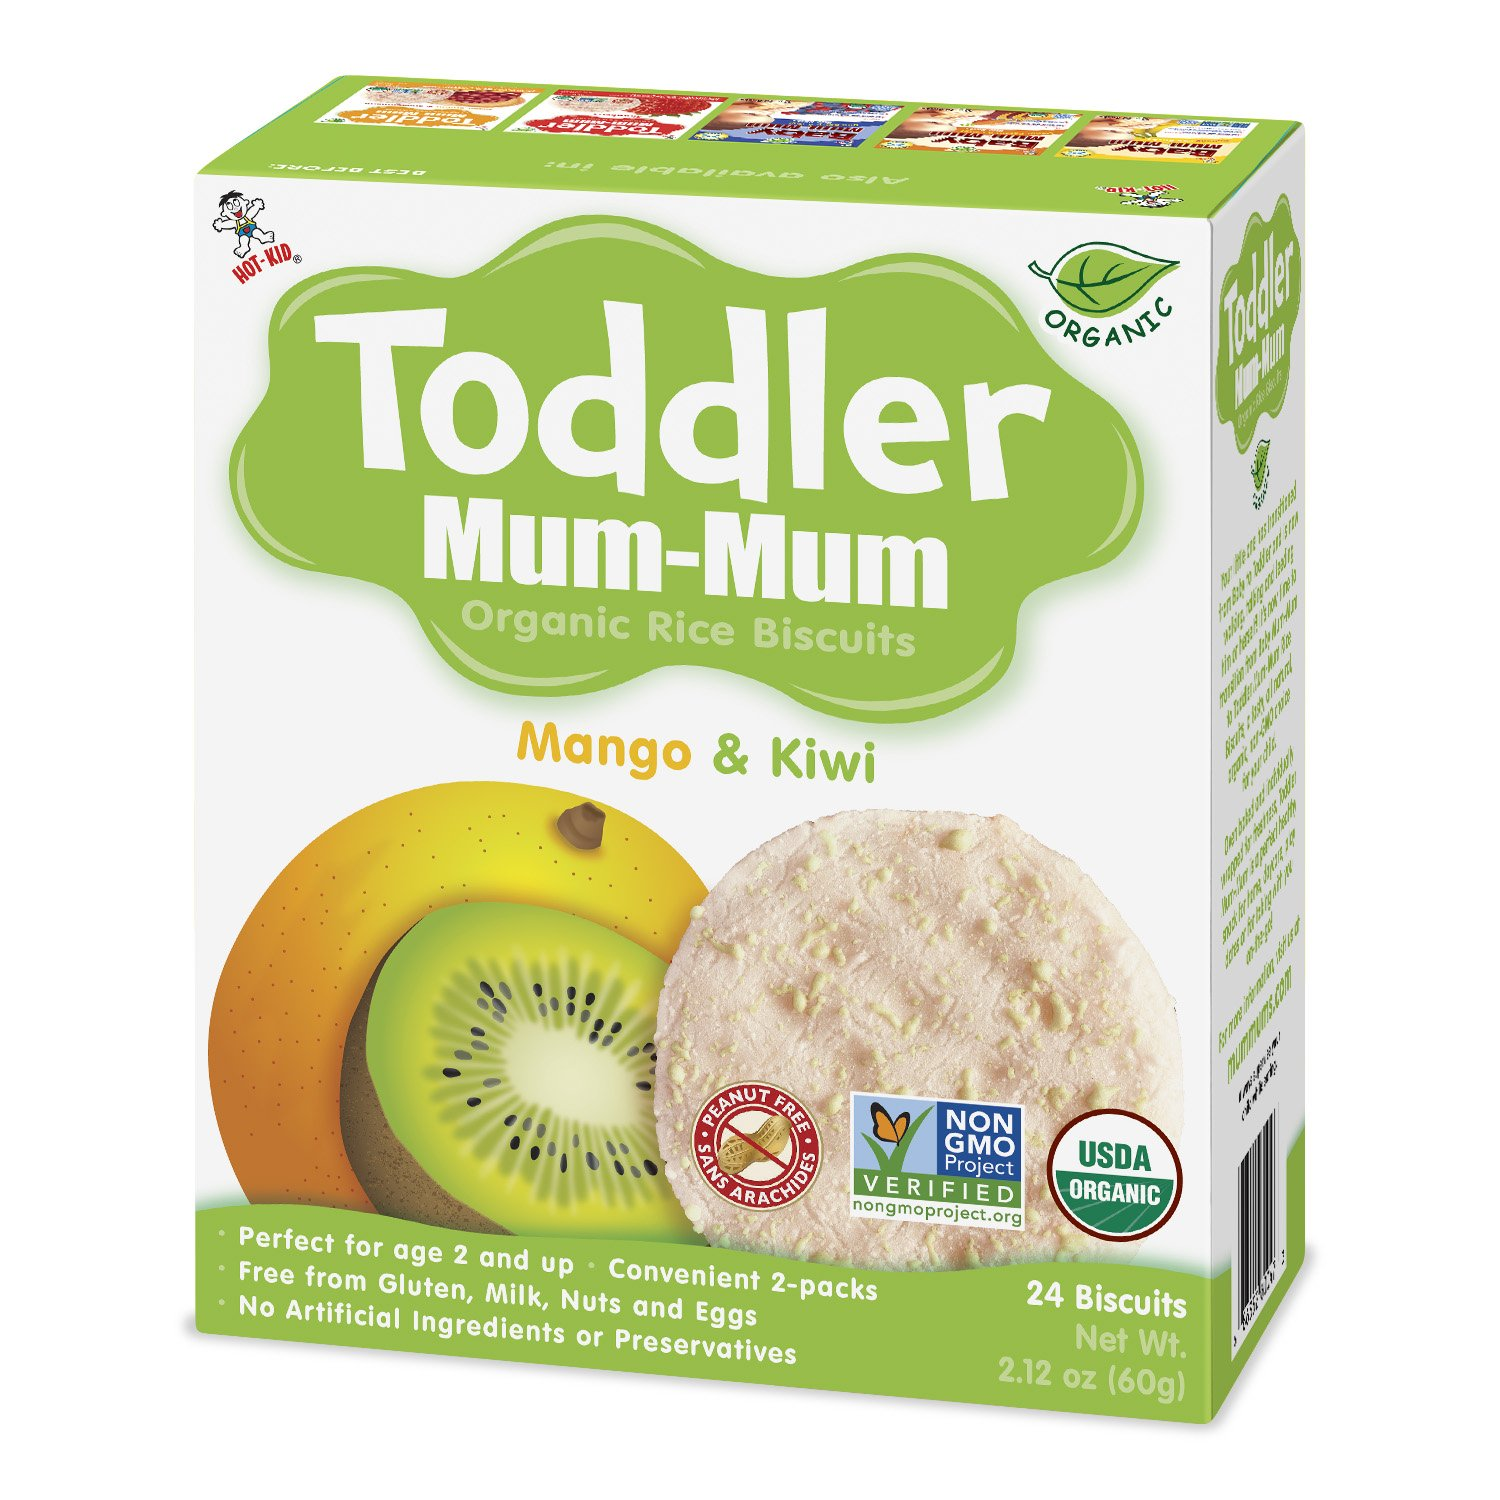 Toddler Mum-Mum Organic Mango & Kiwi, 6-Count Want-Want